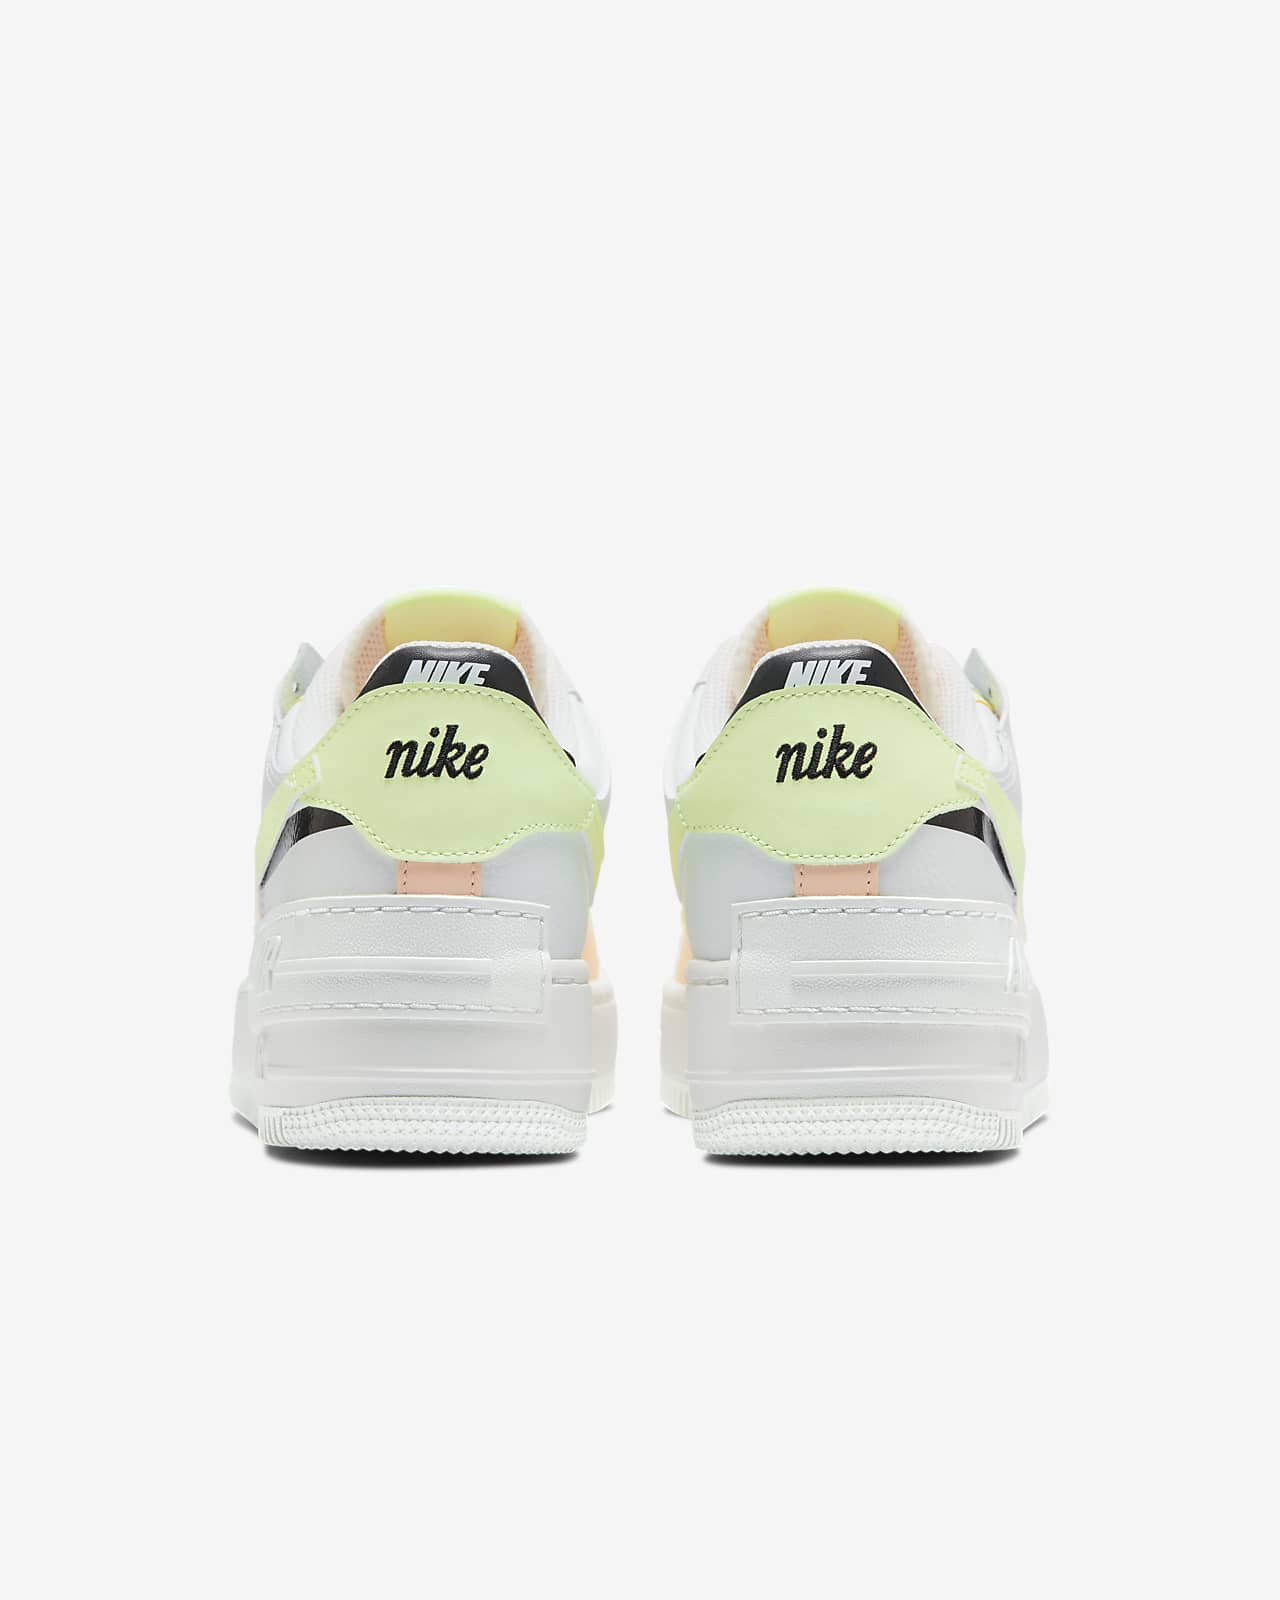 Nike Air Force 1 Shadow Women S Shoe Nike In The shoe's concept takes inspiration from. nike air force 1 shadow women s shoe